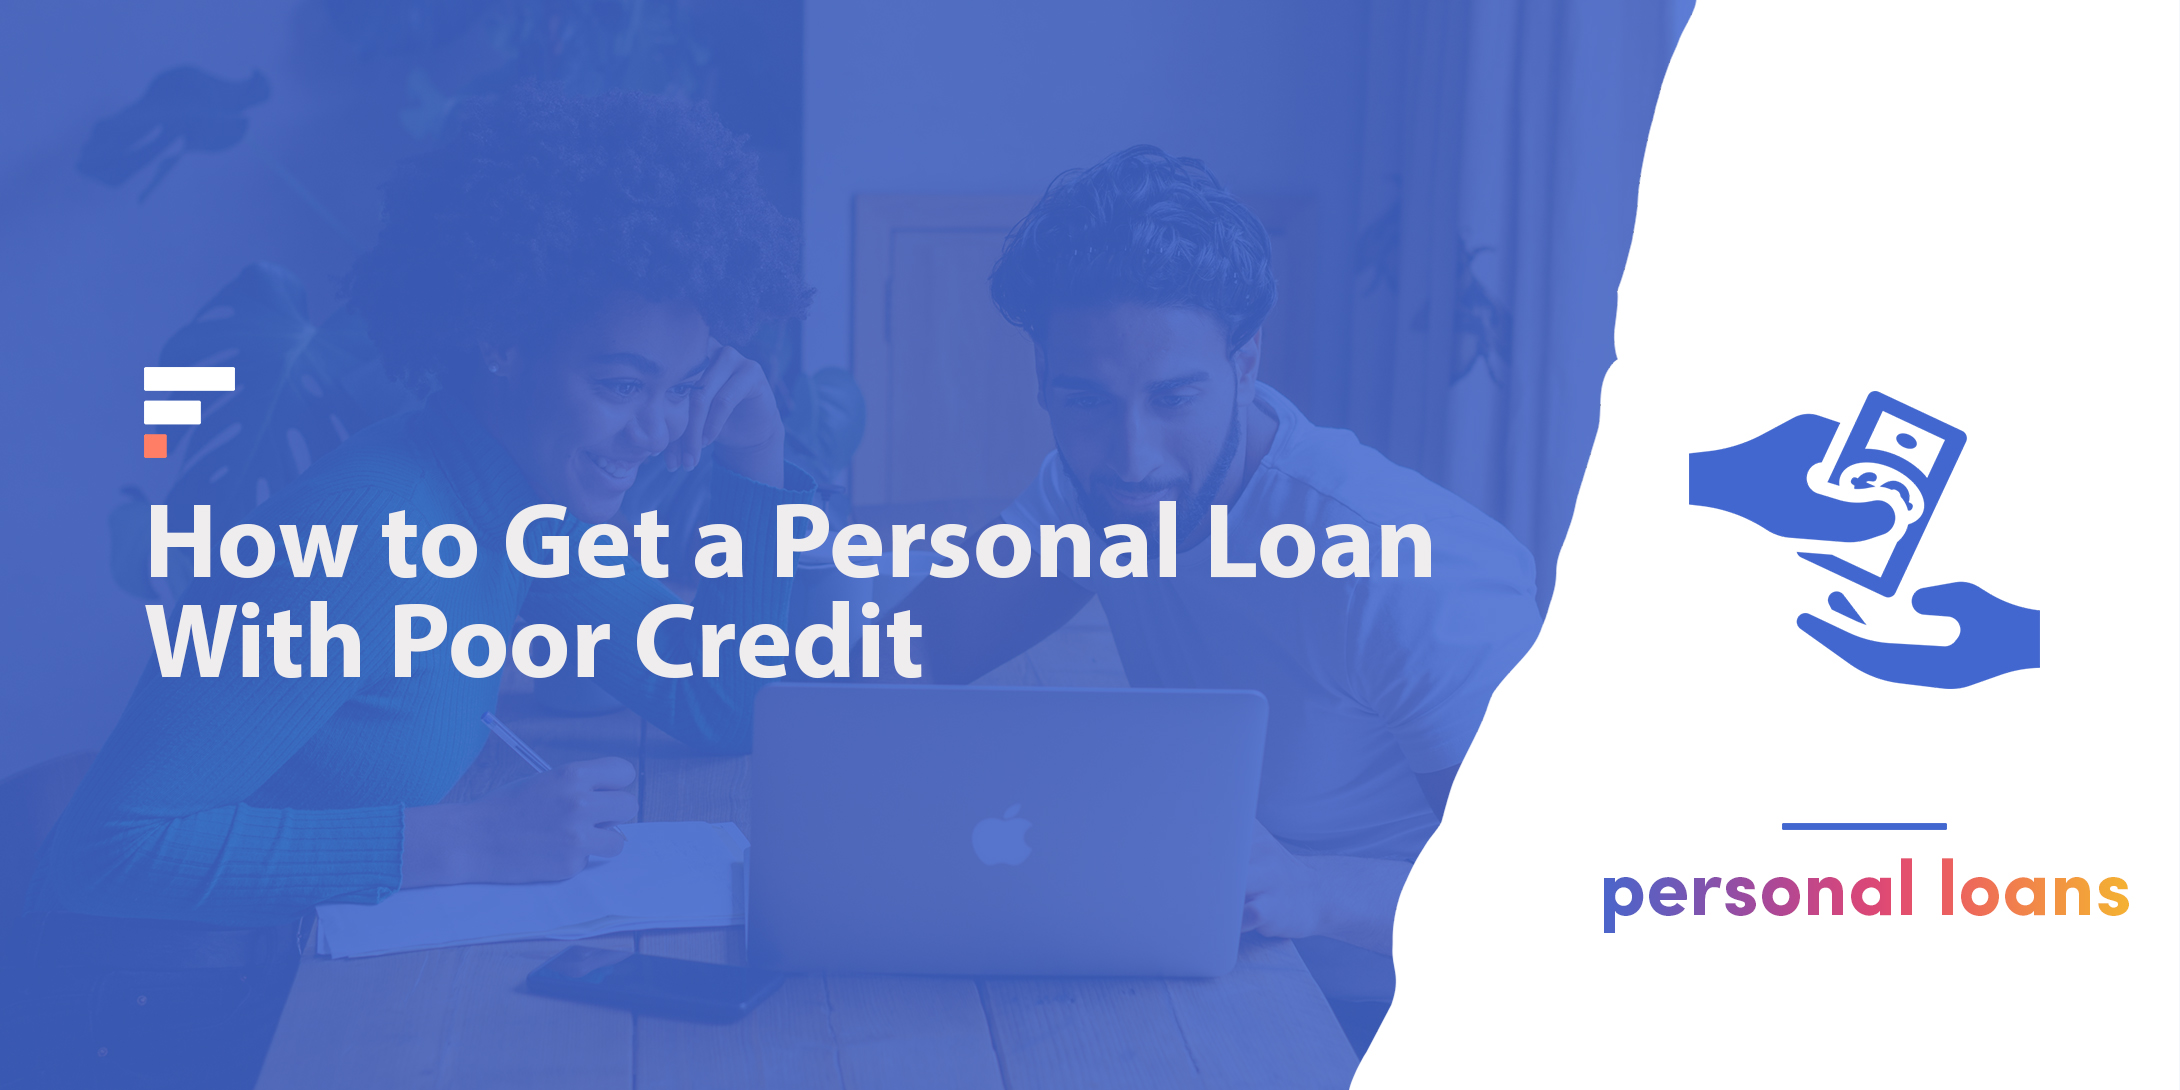 How to get a personal loan with poor credit